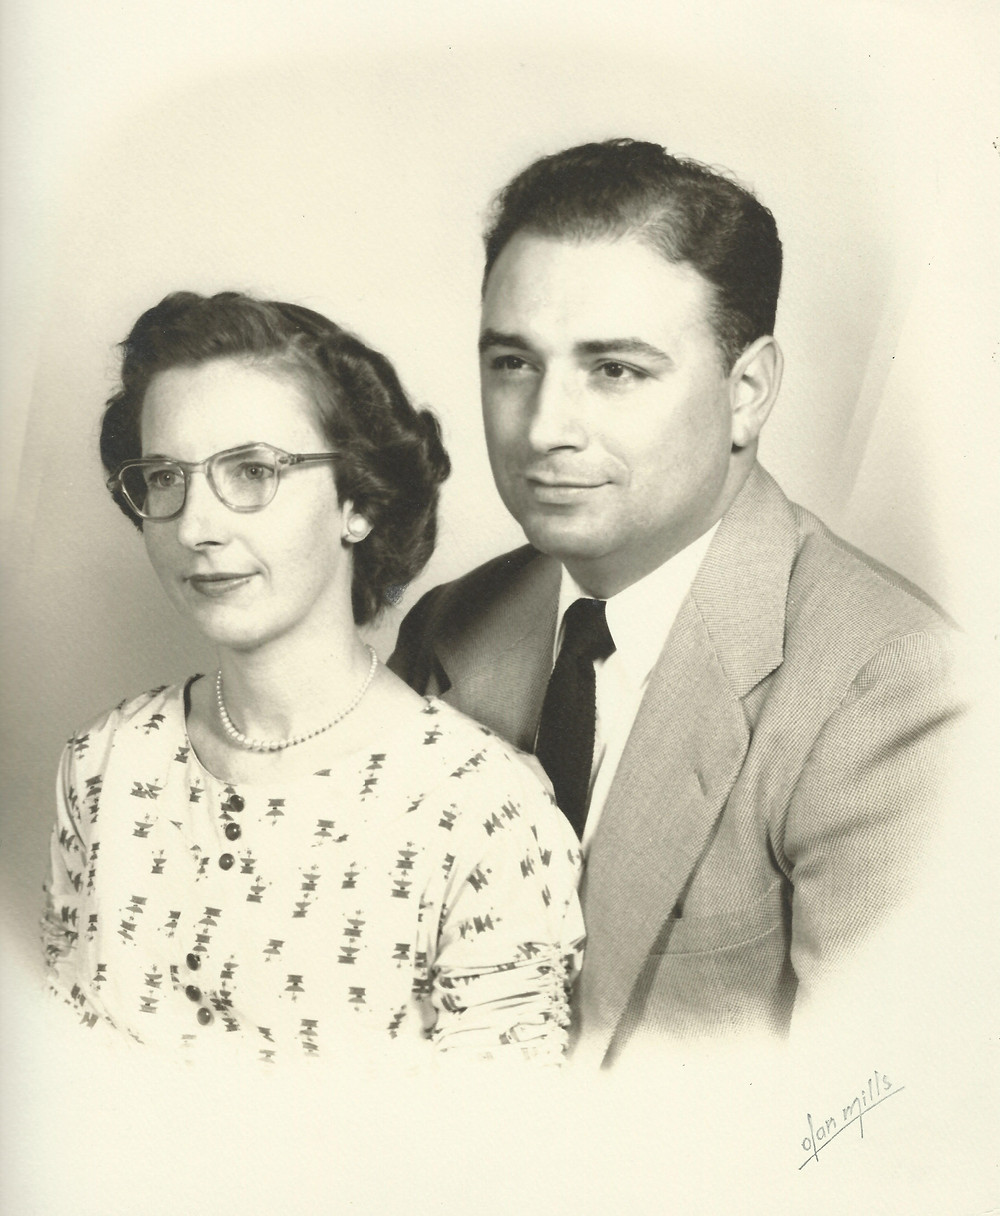 Barbara's parents: Jack and Louise White